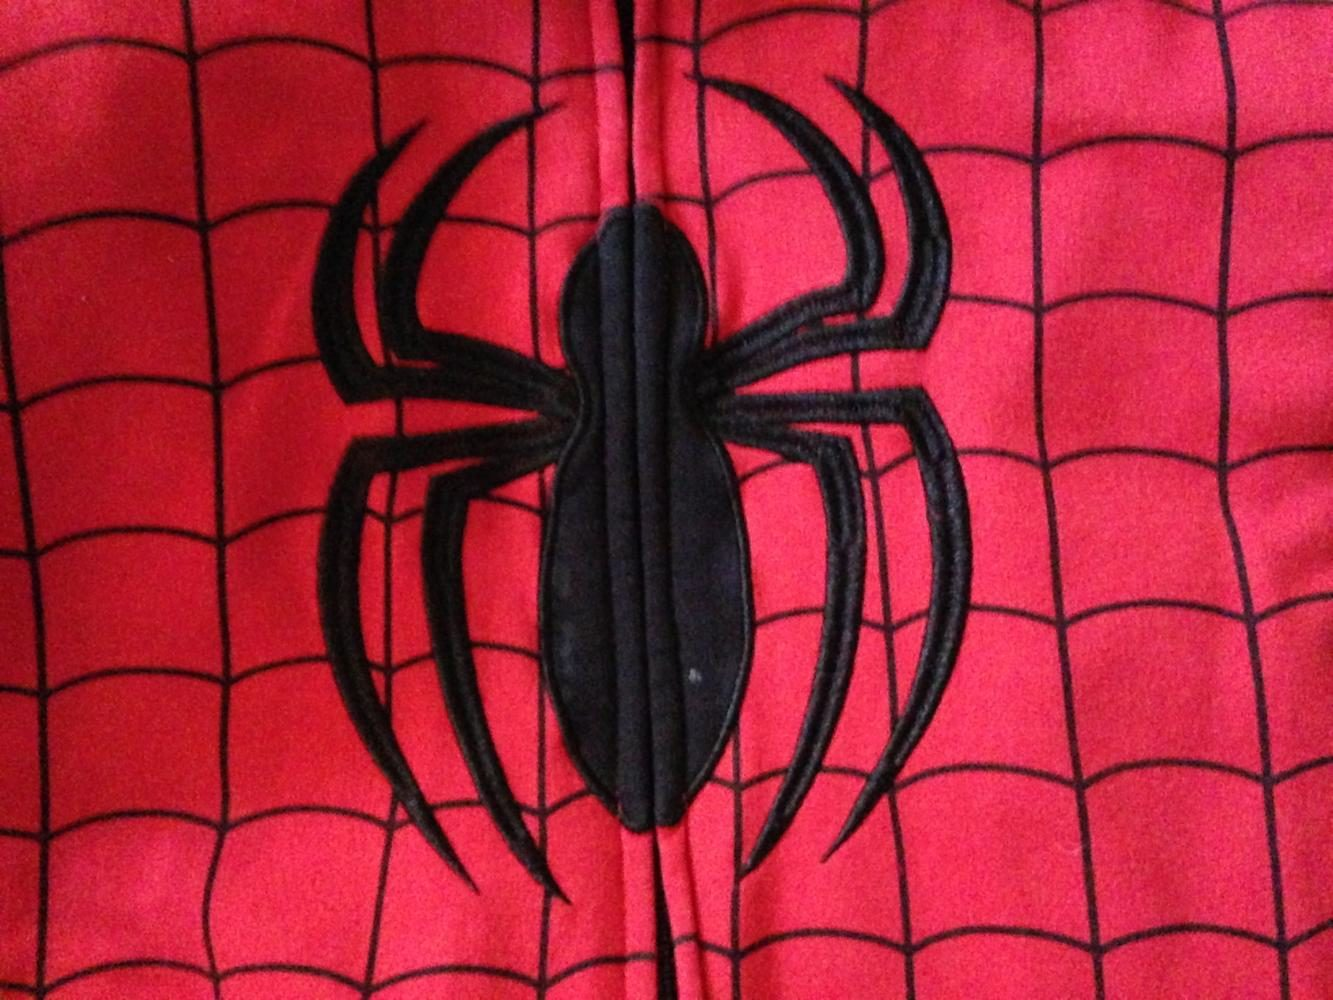 Spider-Man: Homecoming features a new, high-tech Spider-Man costume for a new, high-tech Spider-Man audience.